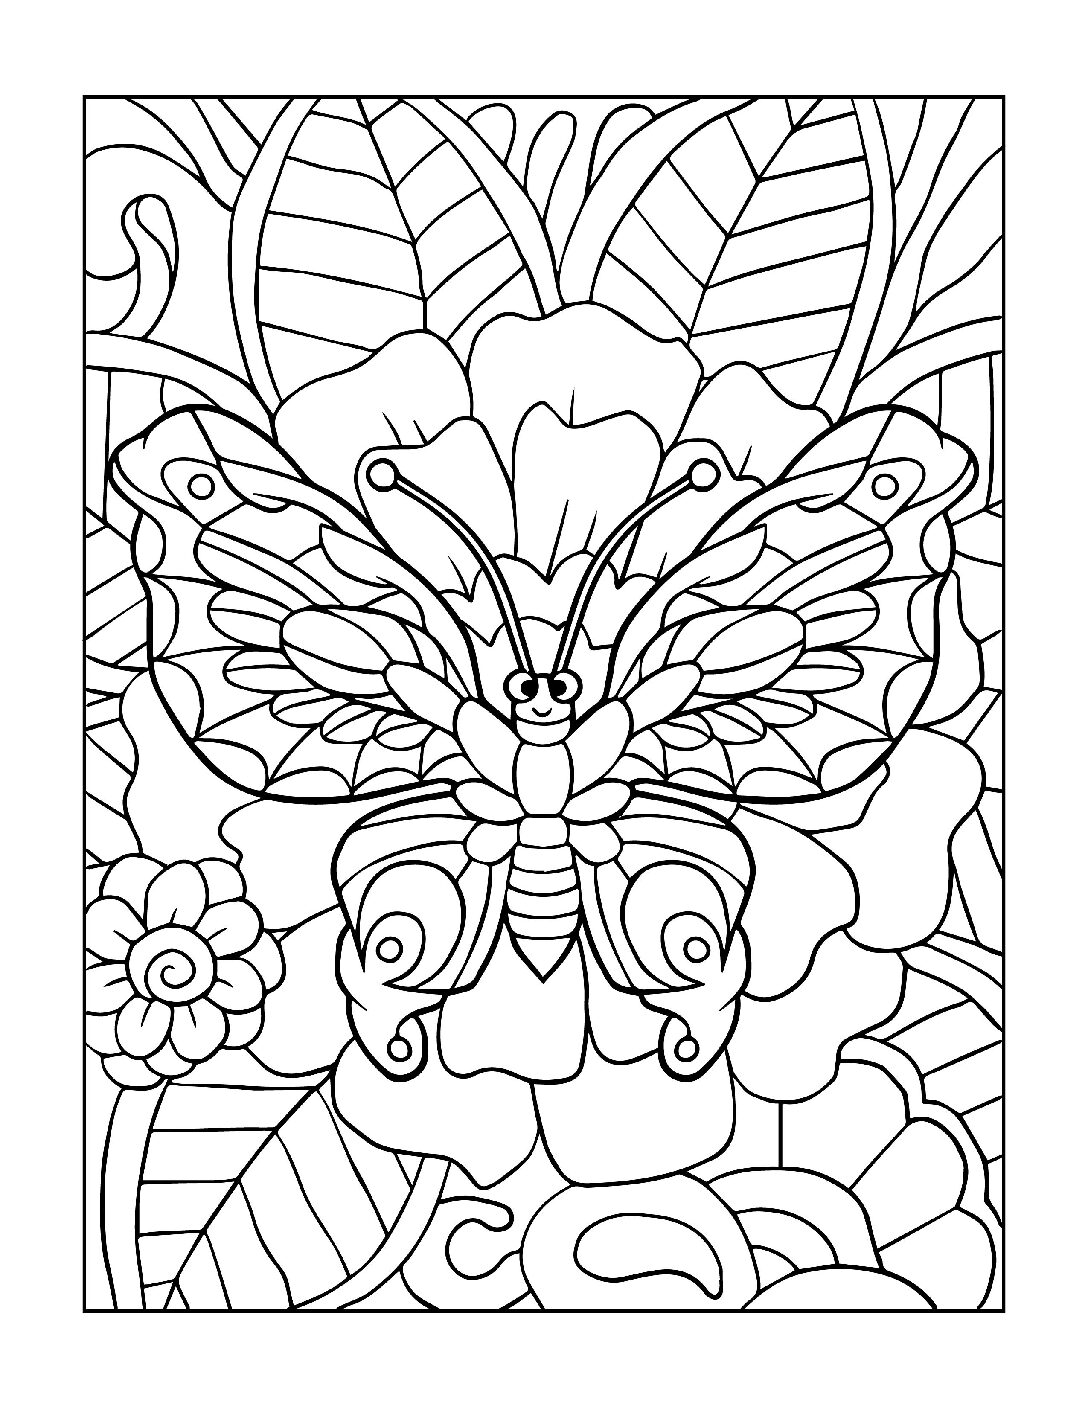 Coloring-Pages_Butterflies-9-01-1-pdf Free Printable Butterfly Colouring Pages